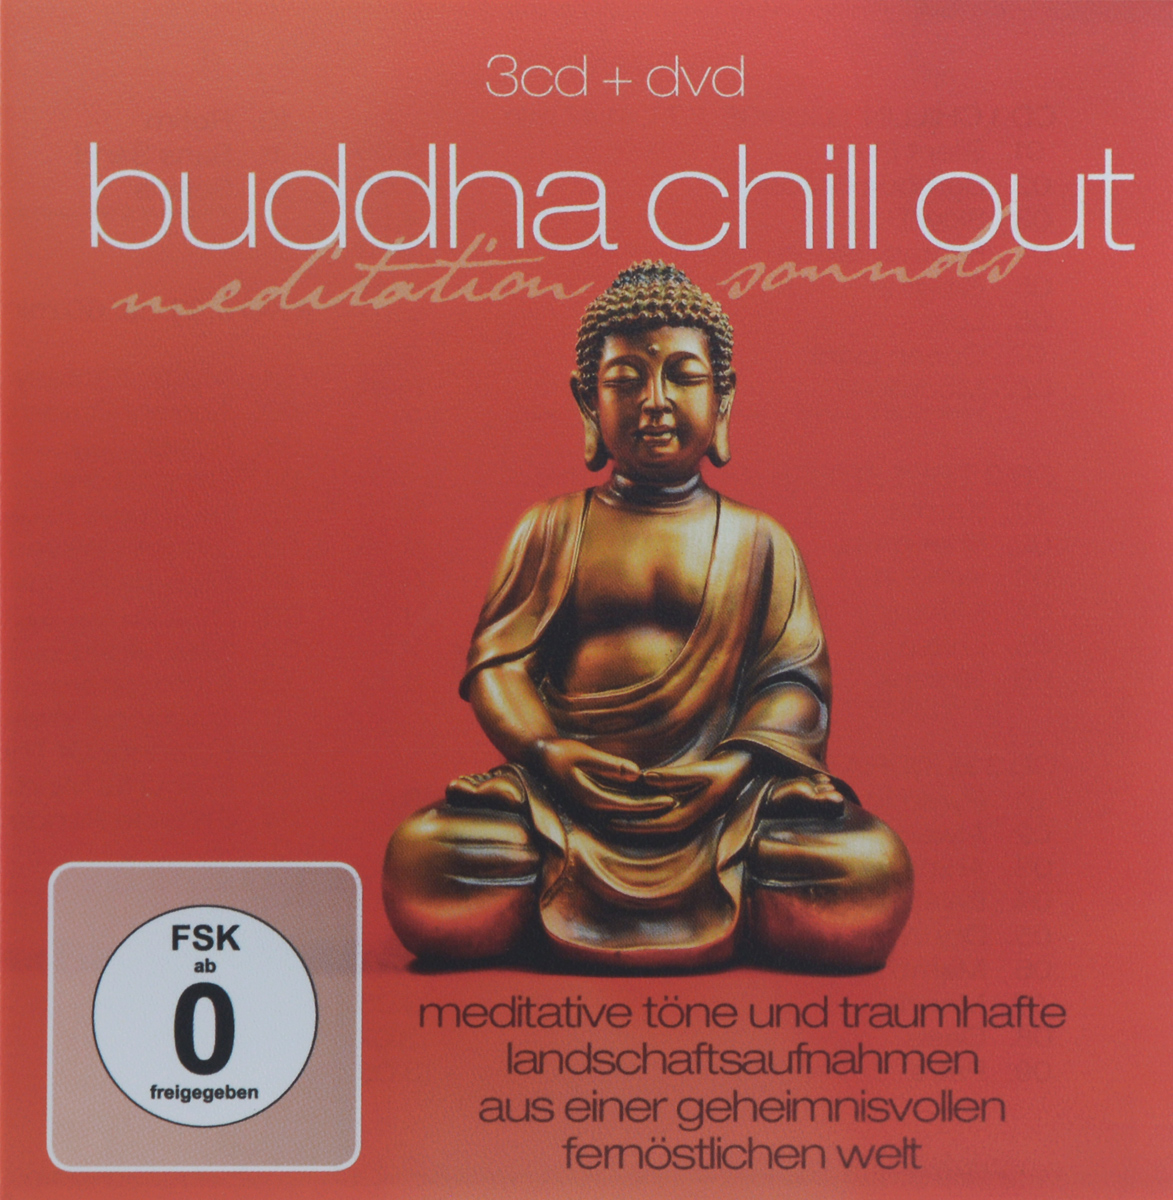 Buddha Chill Out. Meditation Sounds (3 CD + DVD) buddha sounds buddha sounds v new mantrams